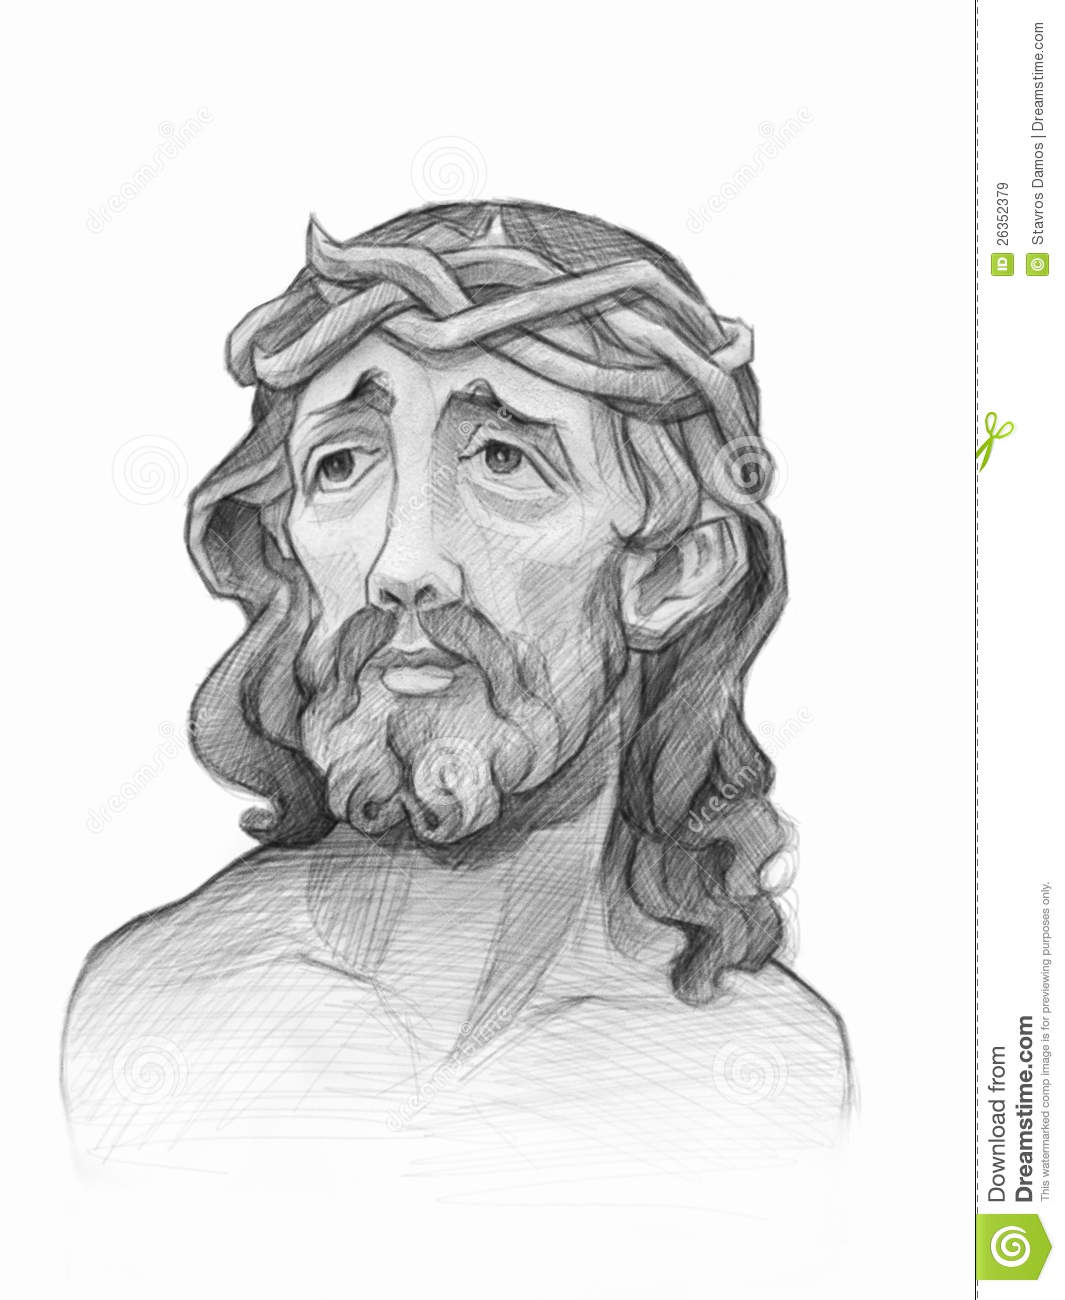 Free pencil drawings of jesus pencil drawings